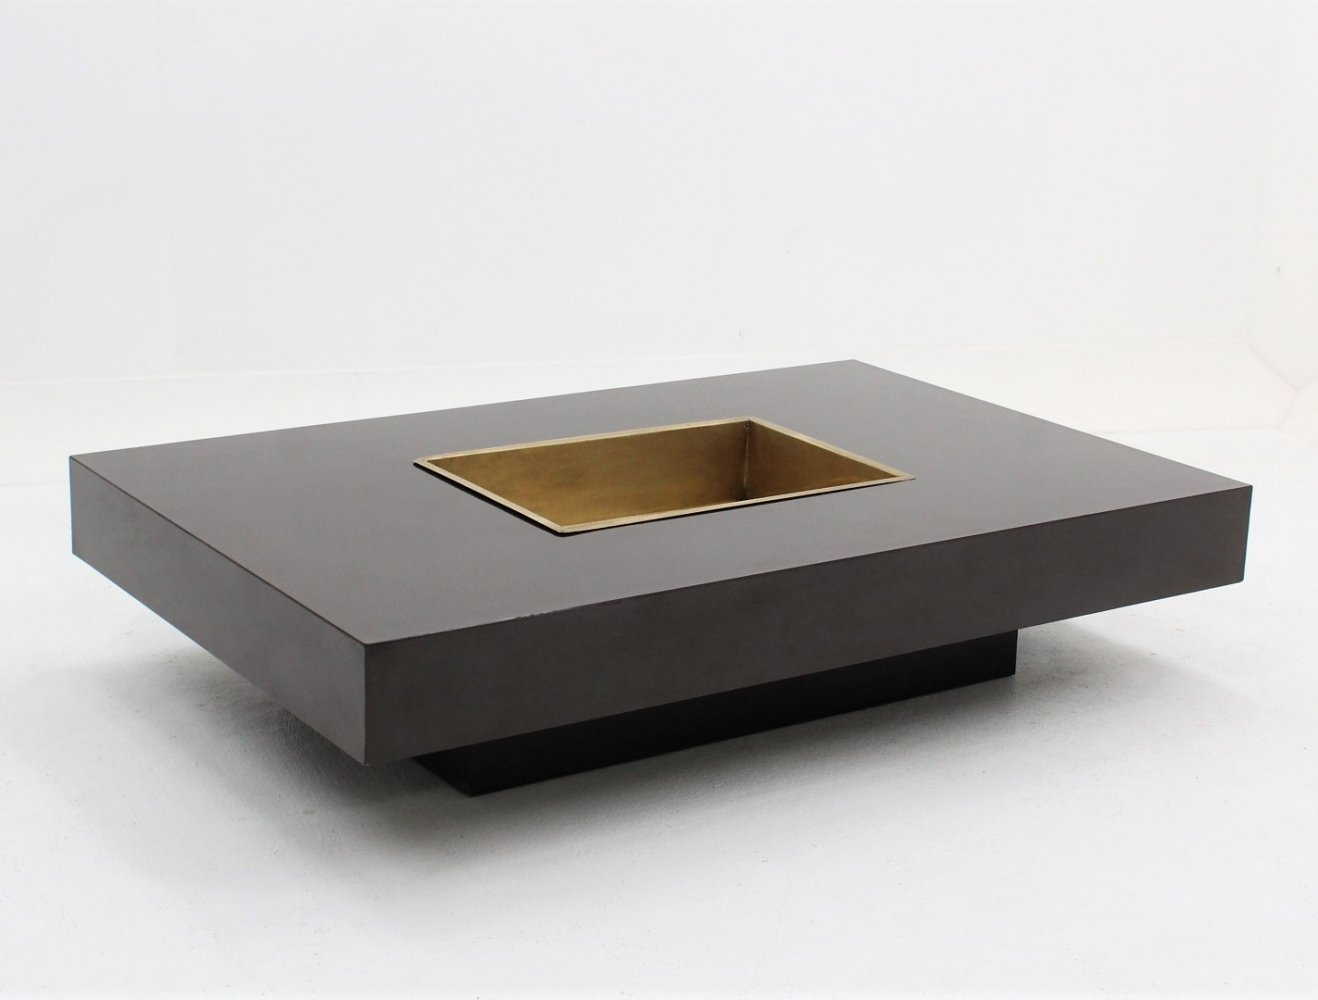 Willy Rizzo Laminate & brass coffee table with bar, 1970s